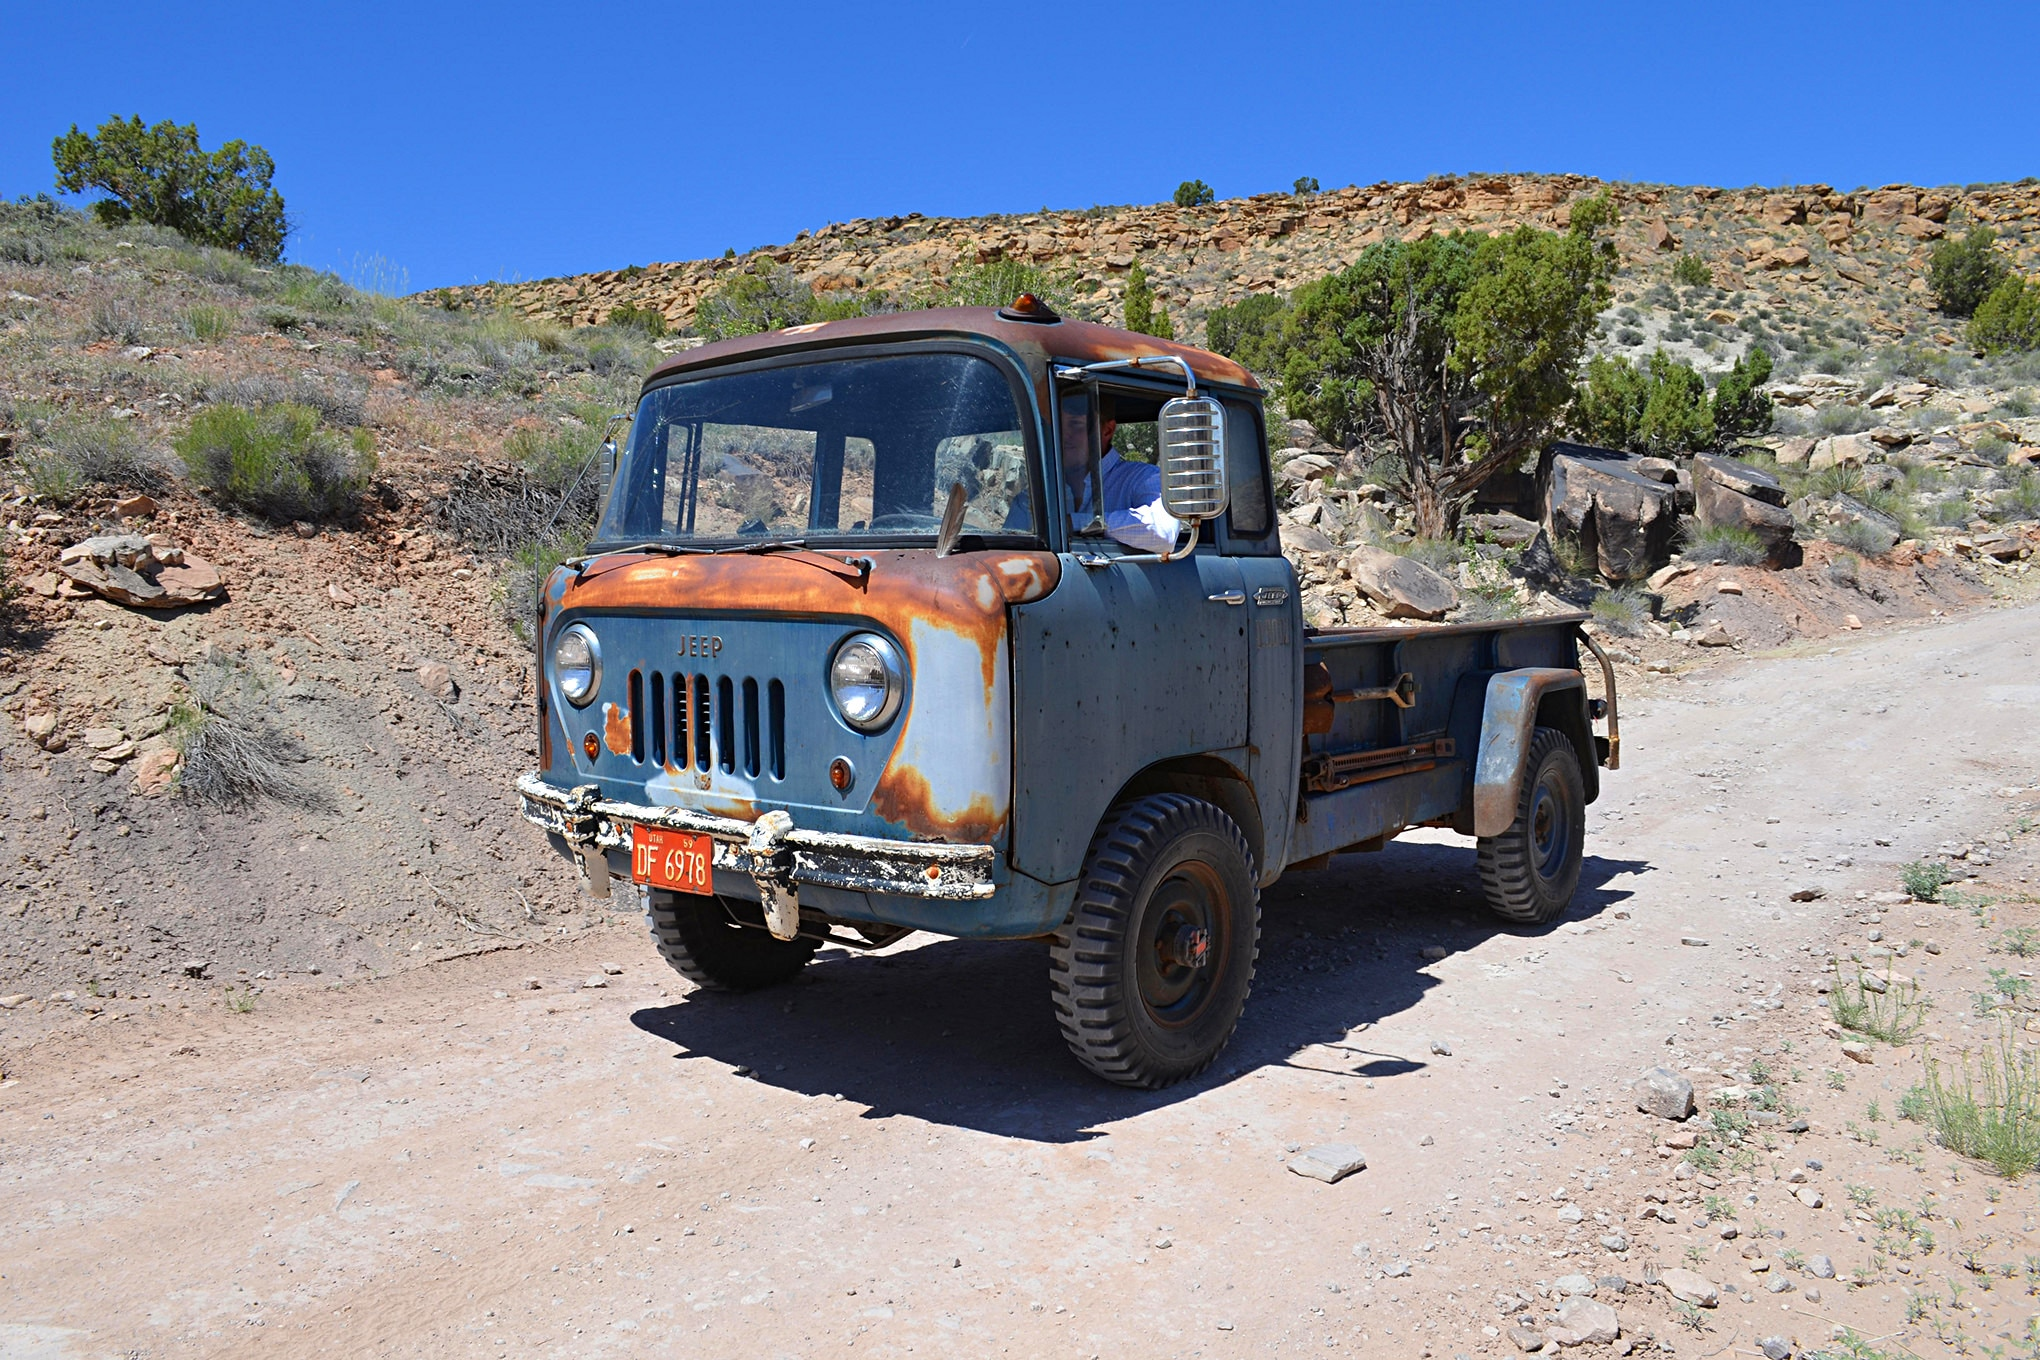 037 willys rally moab 2018 gallery.JPG